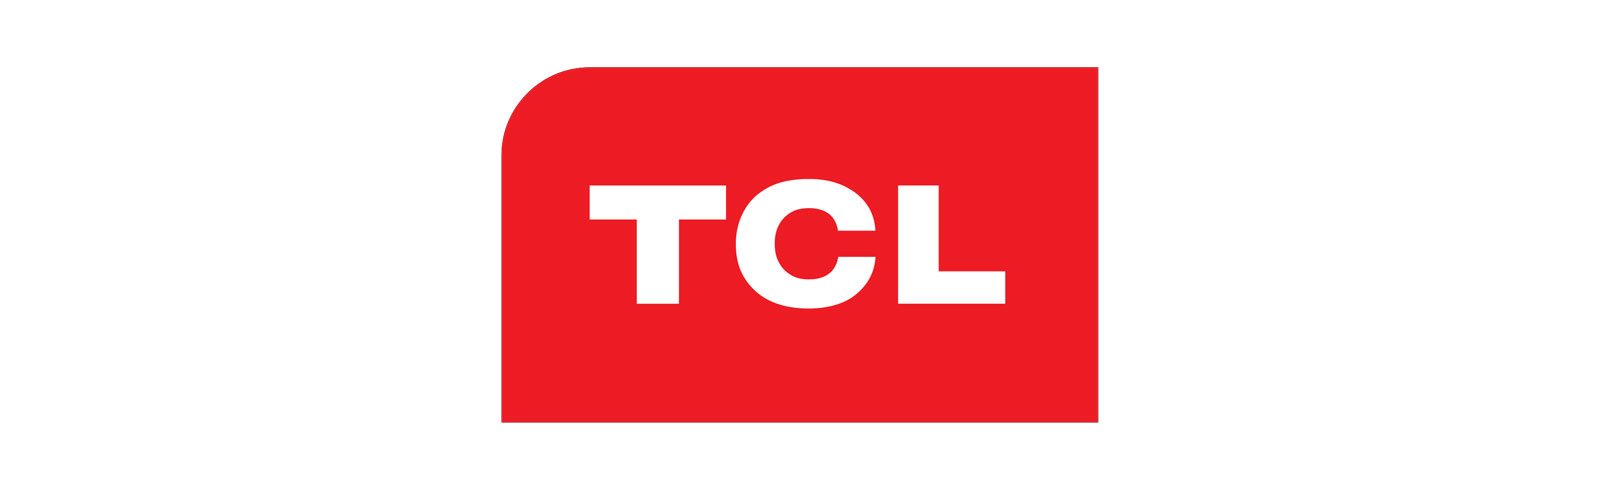 TCL sold 32 million TV sets in 2019 globally